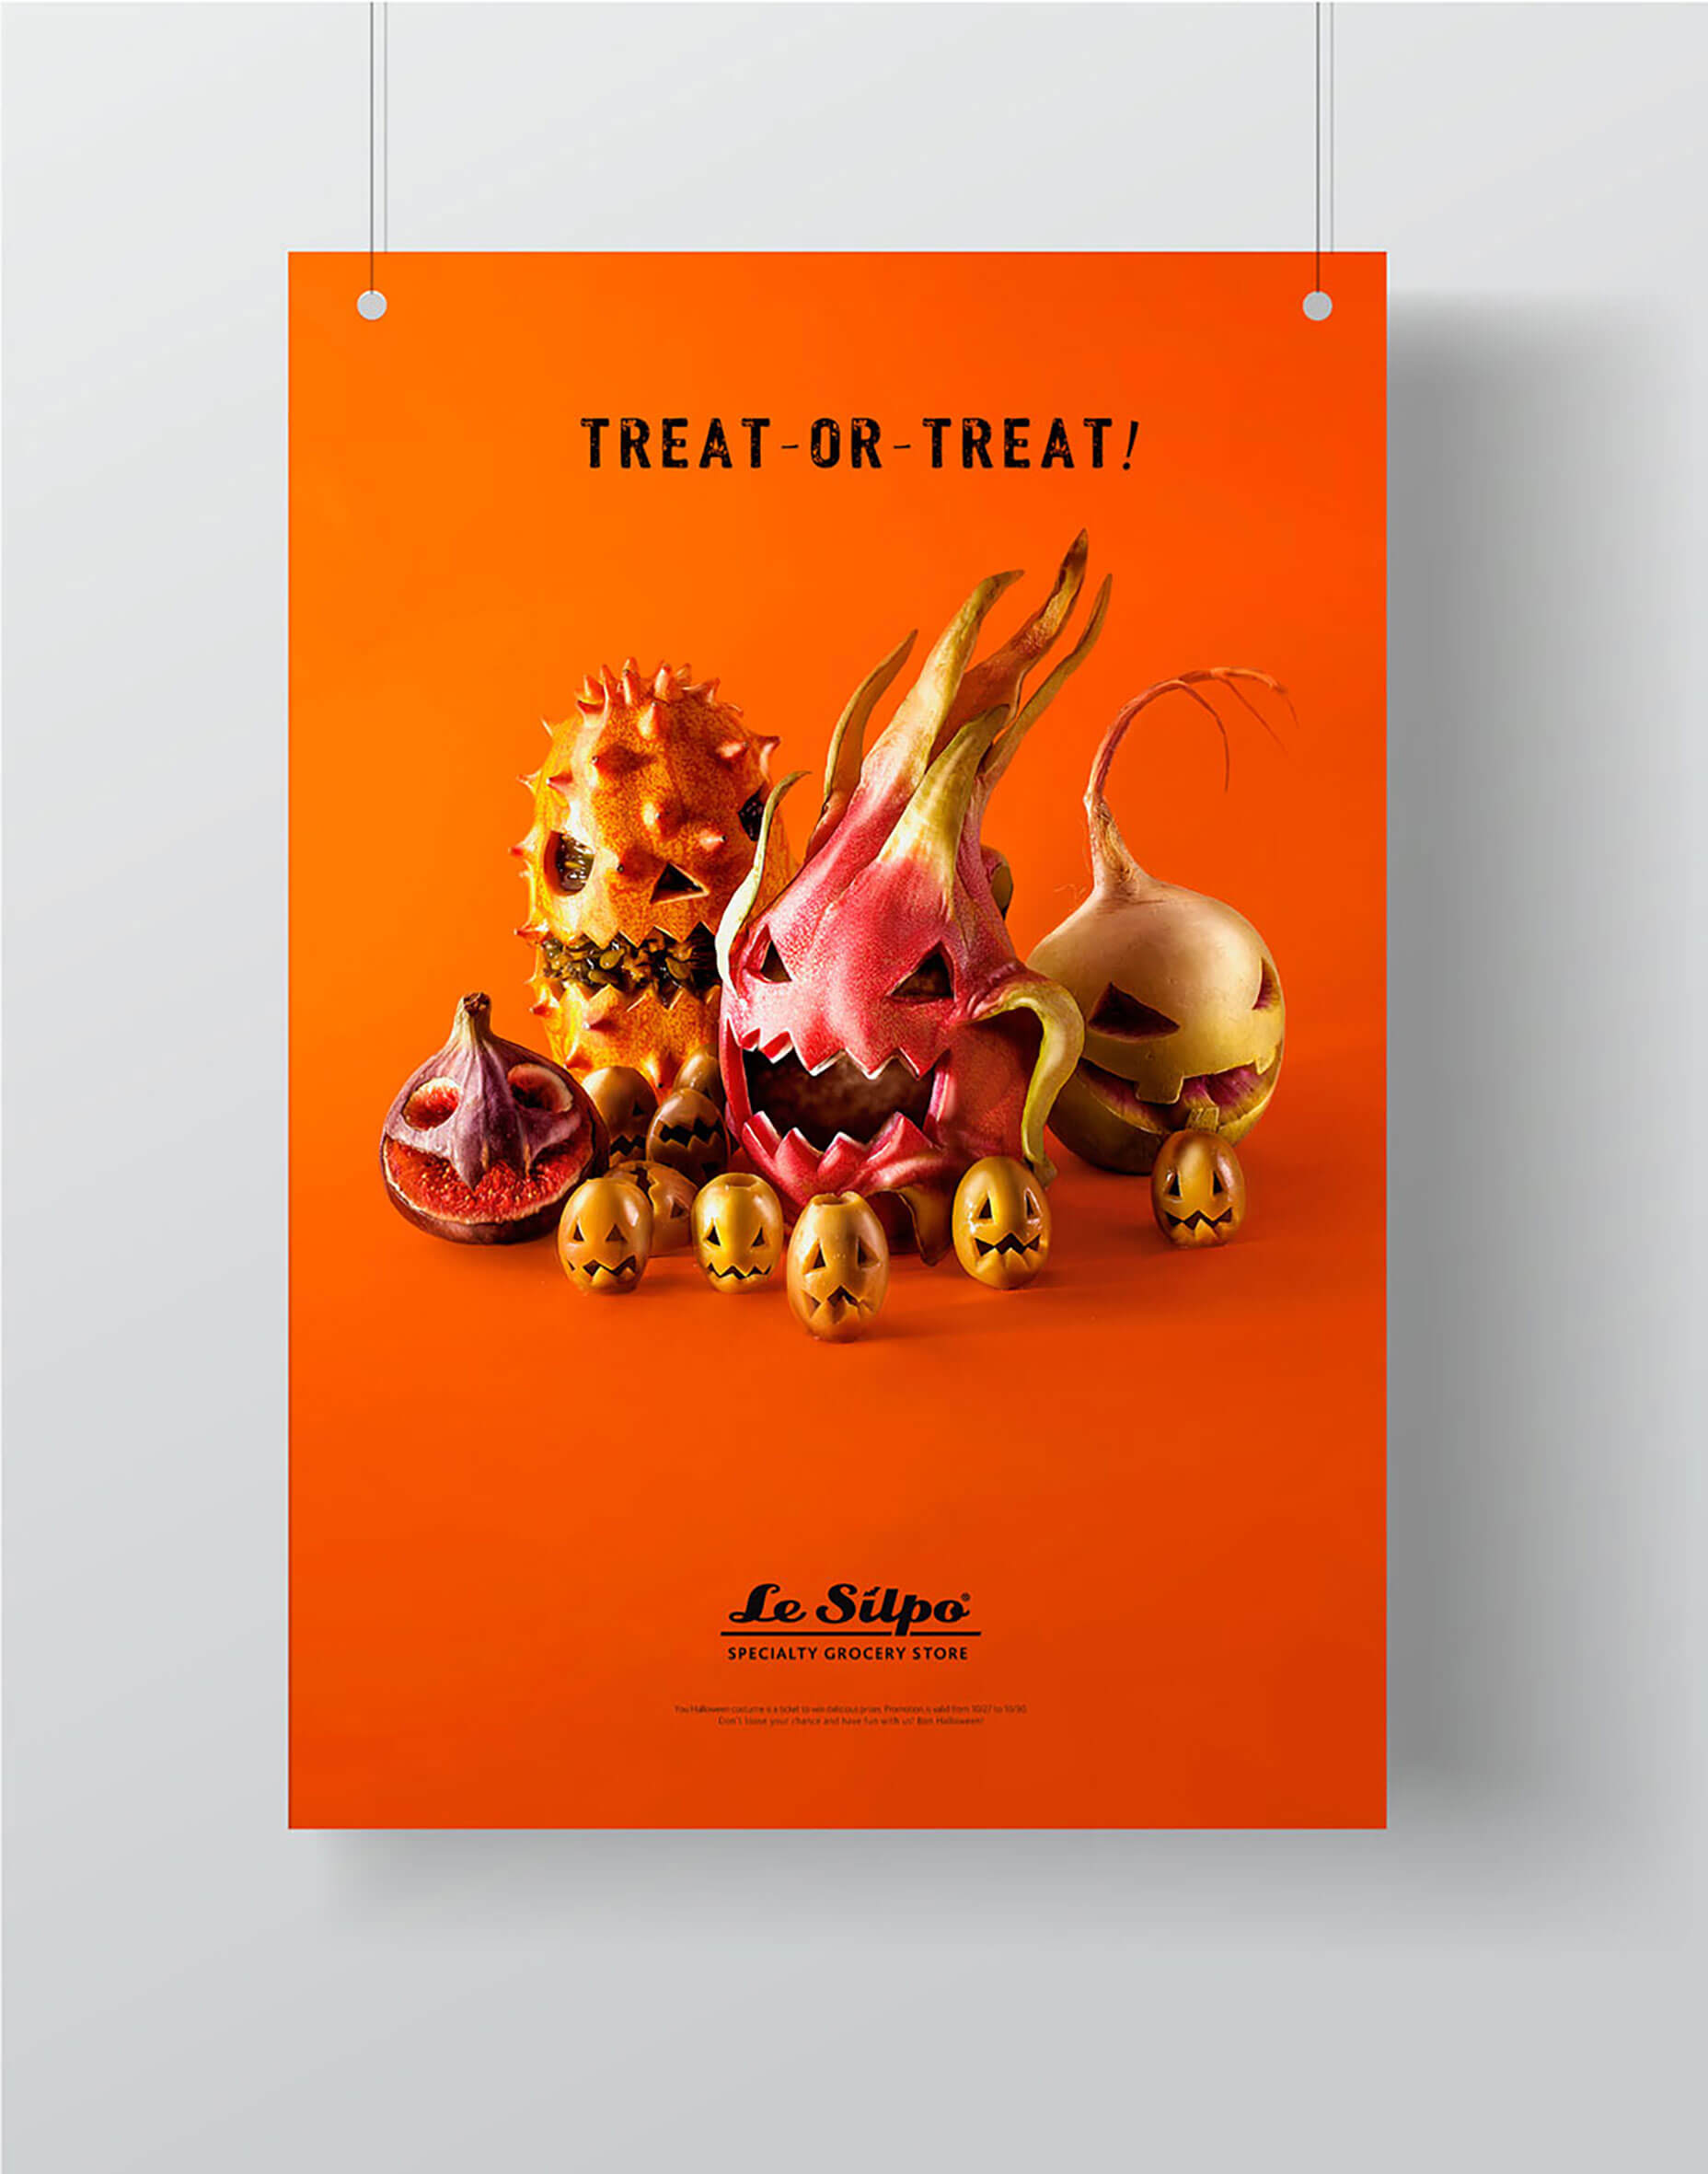 Treat-or-treat1